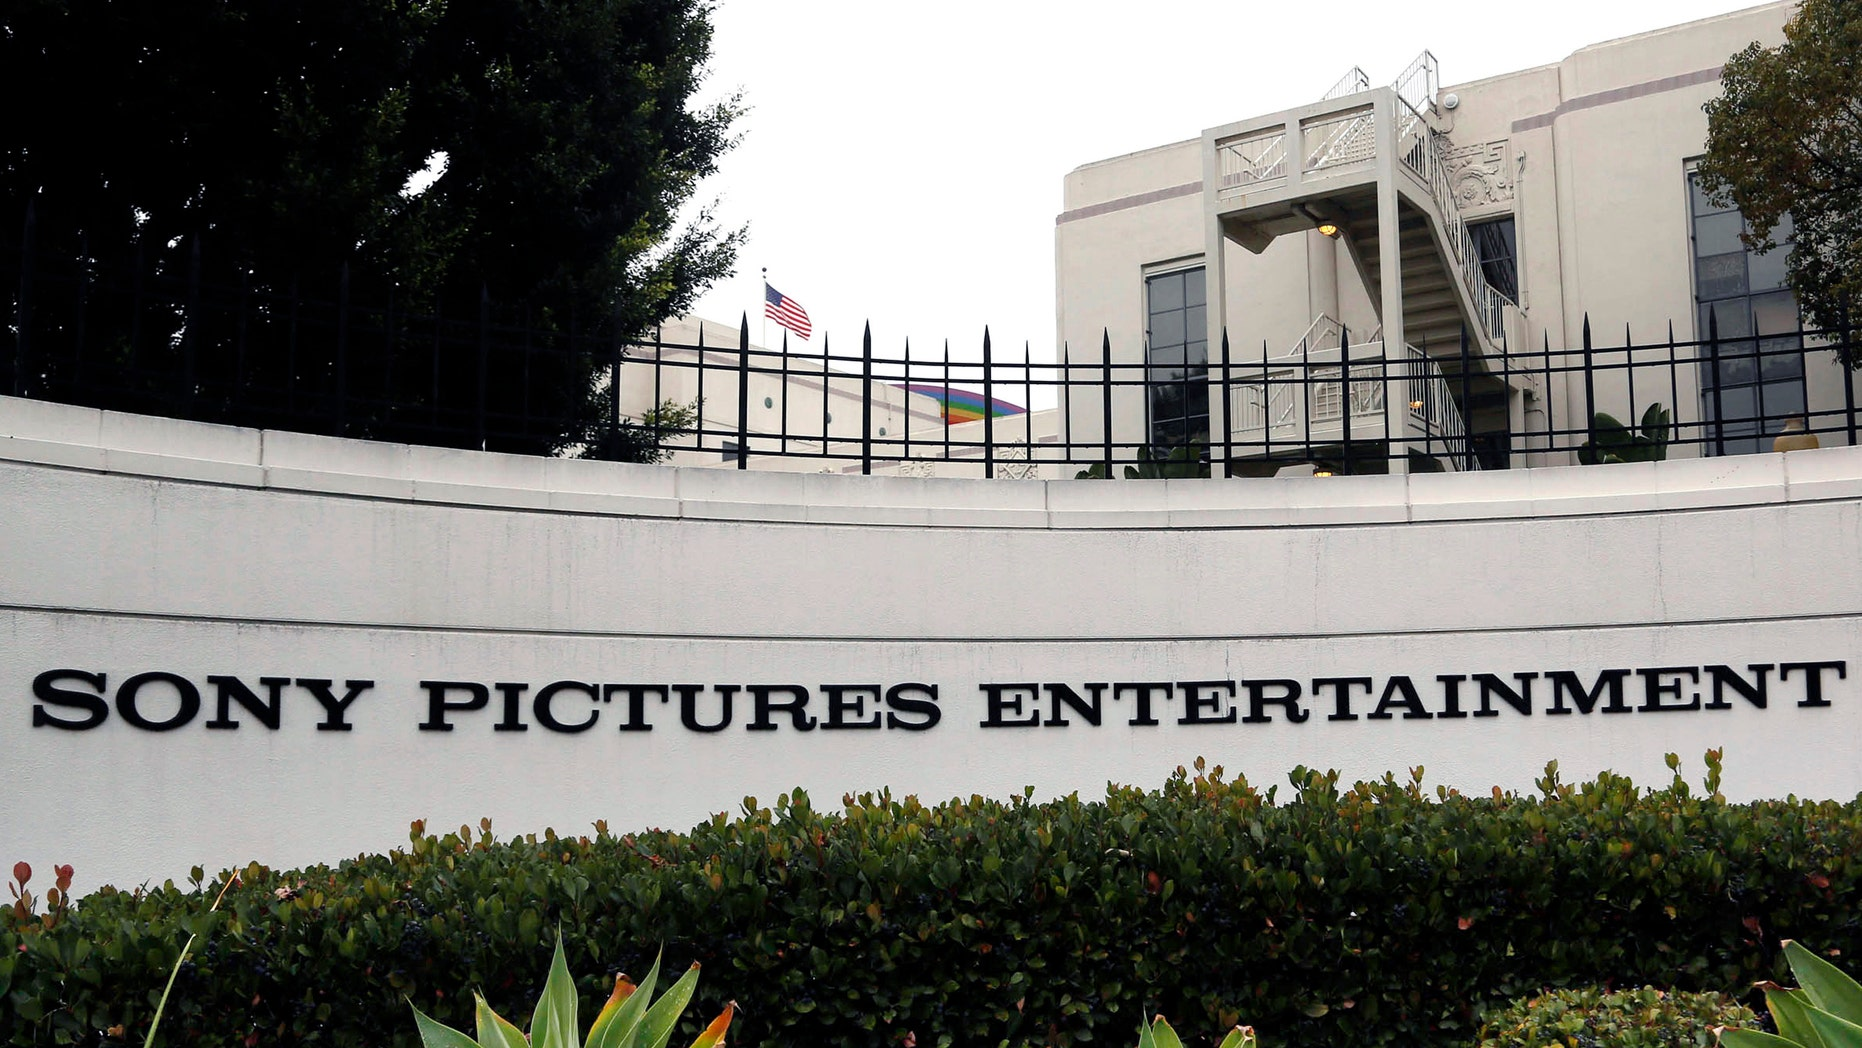 Sony Pictures Entertainment headquarters in Culver City, Calif.